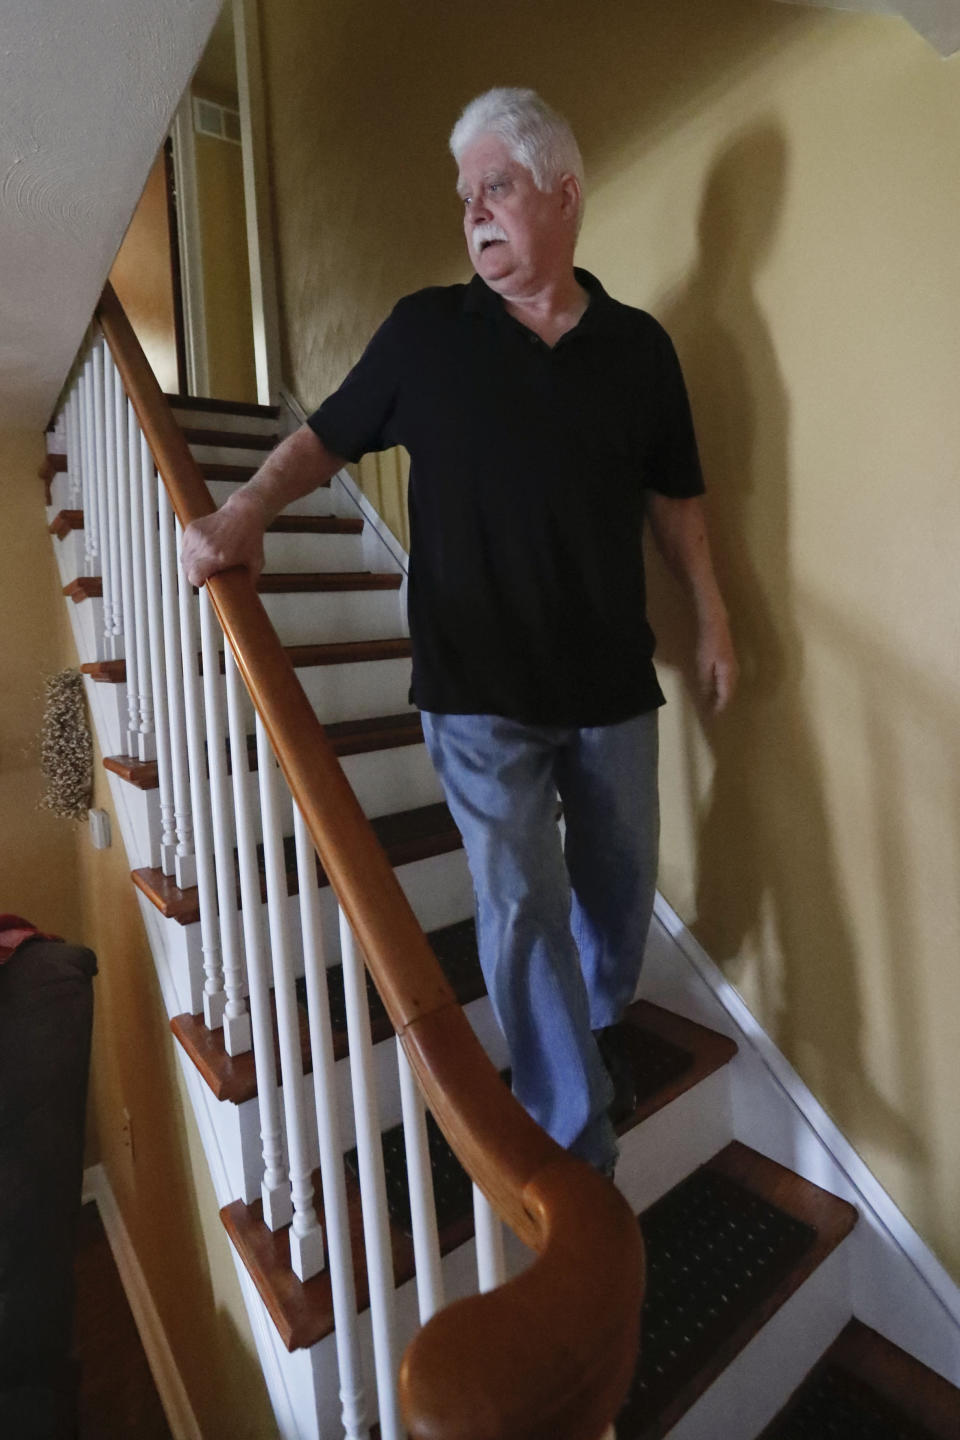 In this April 8, 2019, photo Chuck Pope, who suffers from rheumatoid arthritis, walks down the stairs in his home in Derry, Pa. While he was still working, his insurance covered an injected drug that relieves pain and stops irreversible joint damage but retails for over $5,000 a month. Now his Medicare plan doesn't cover the drug, and Pope says his condition is deteriorating without it. Meanwhile, sales of approved, cheaper versions have been blocked. (AP Photo/Keith Srakocic)